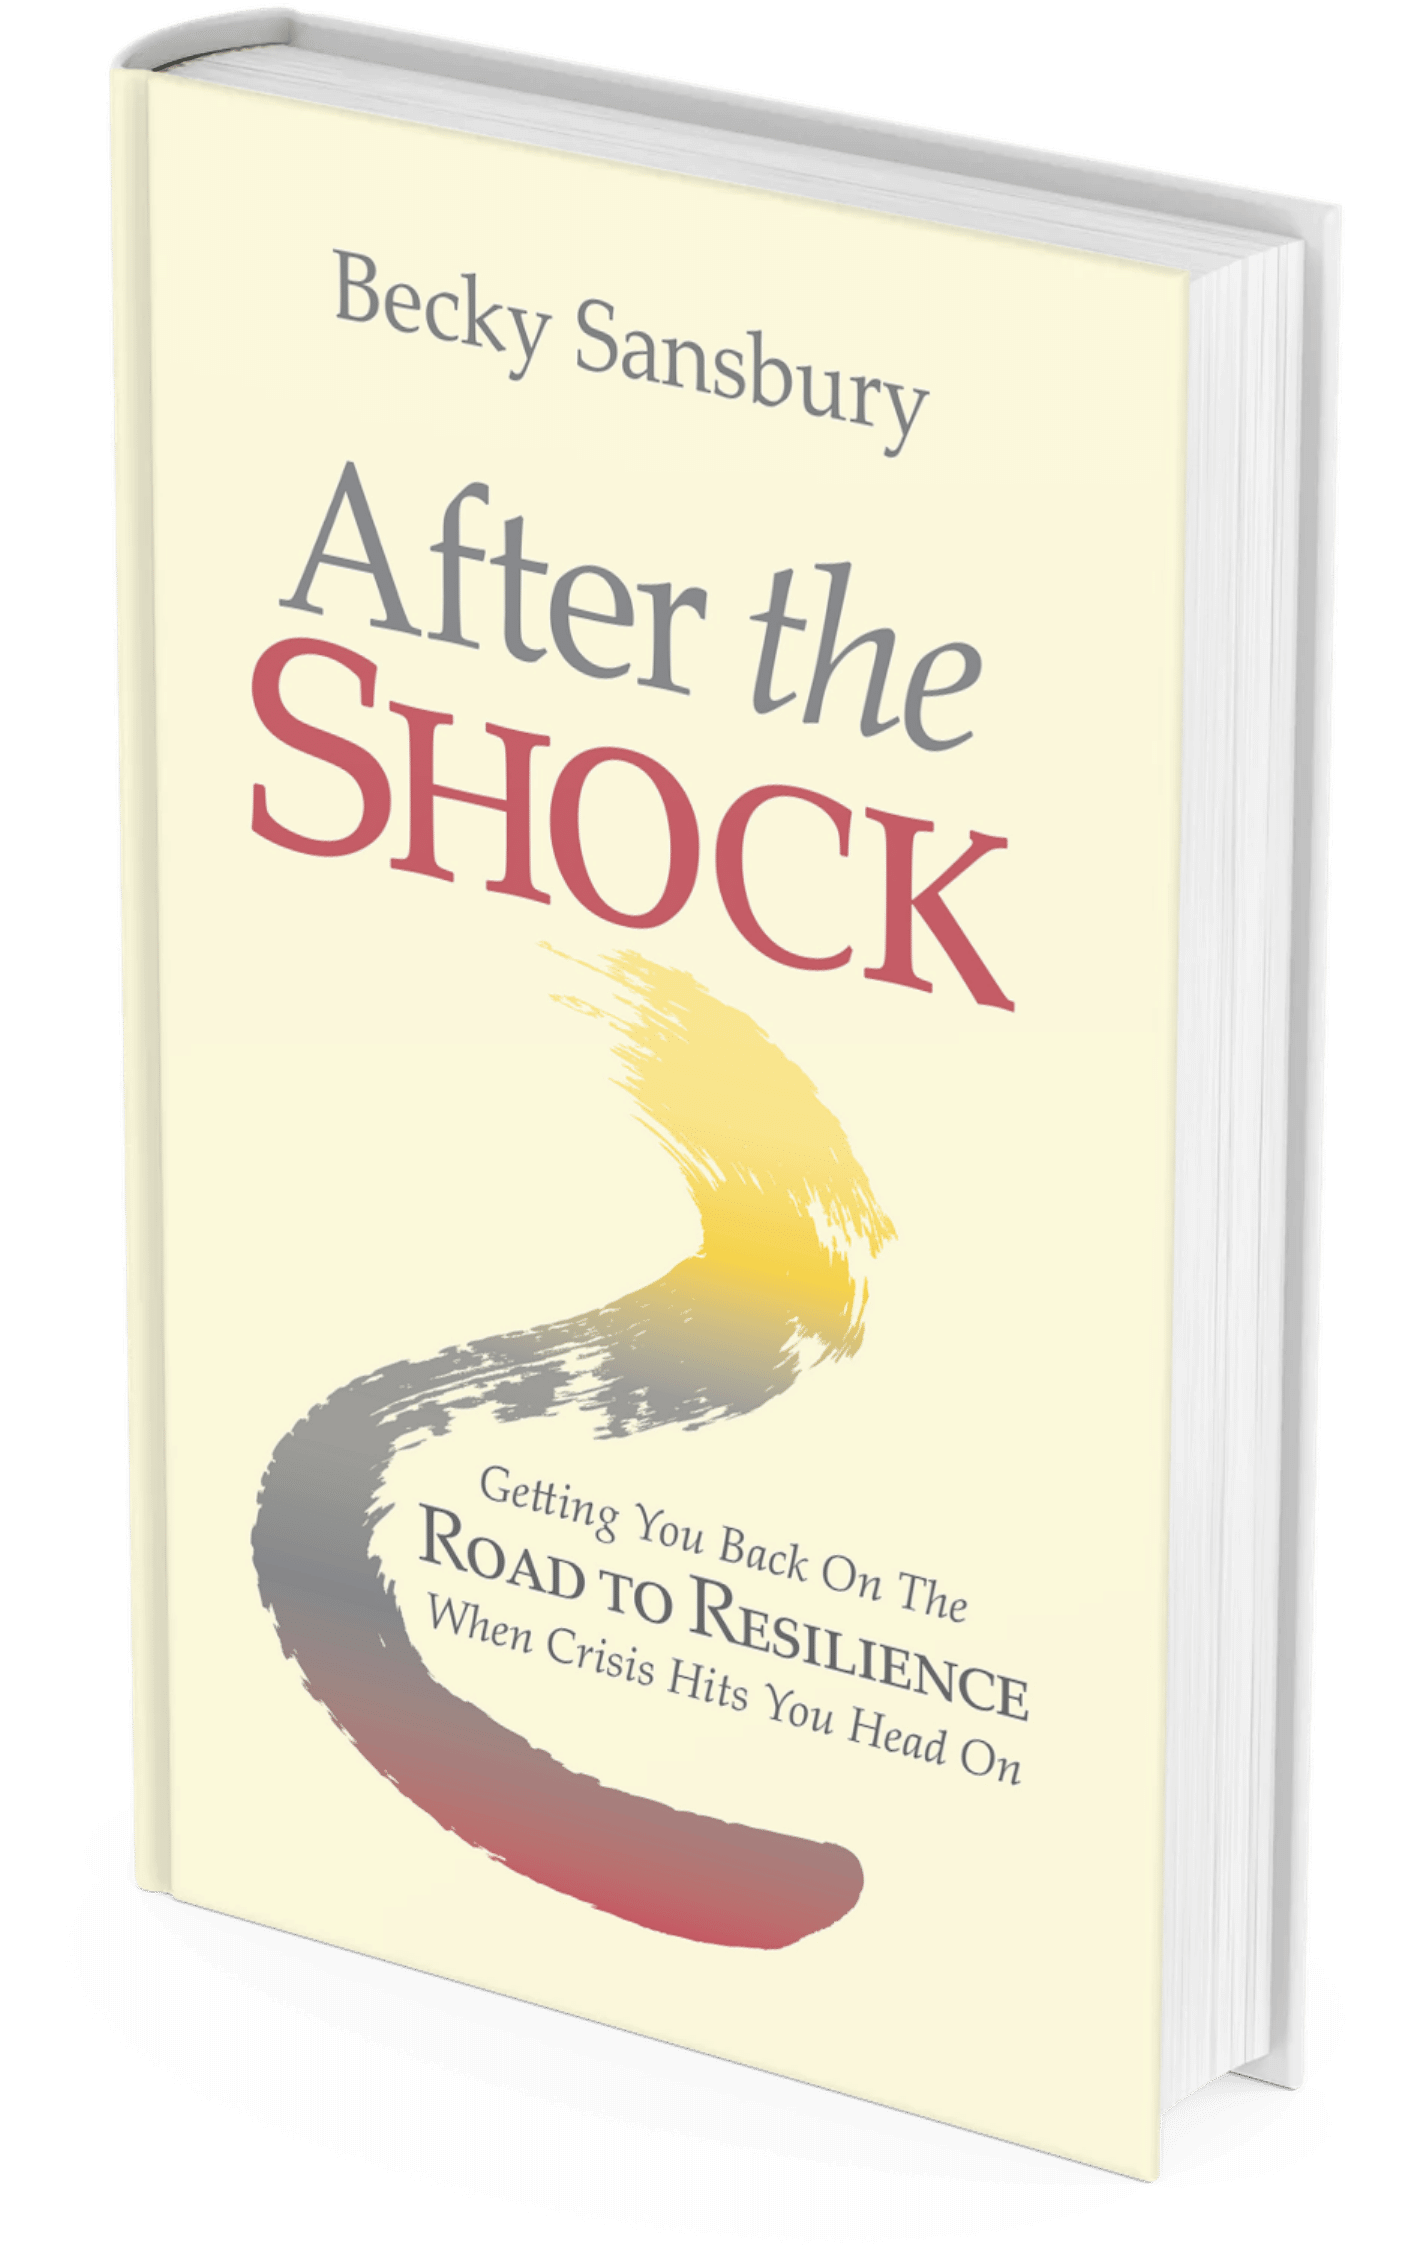 After the Shock